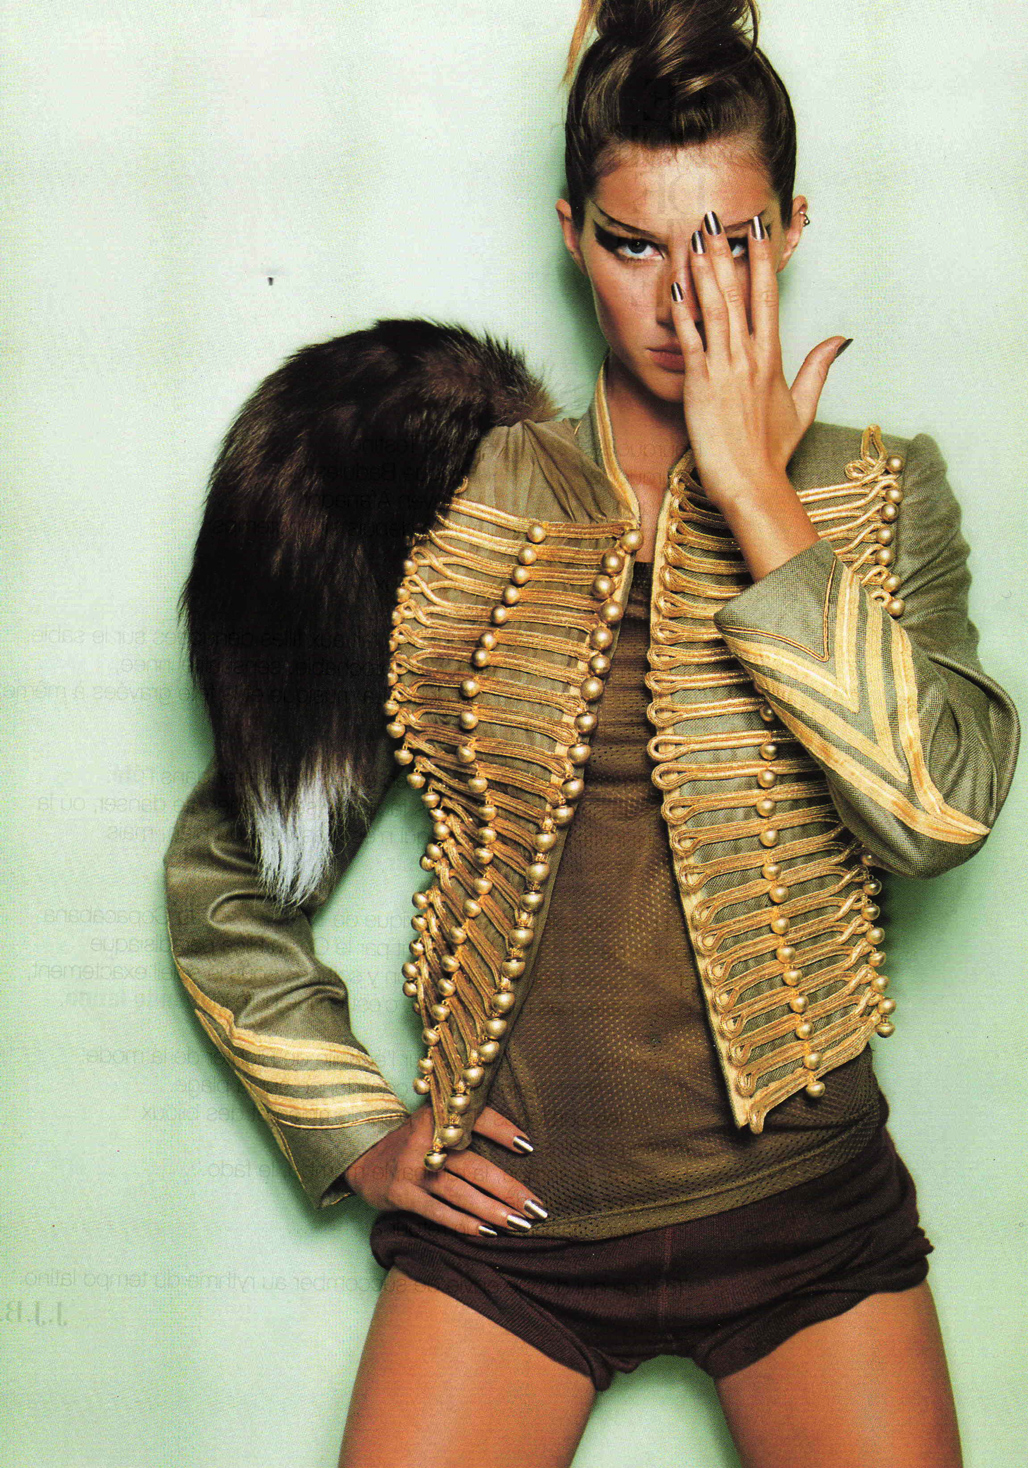 military/band jacket with fox tail - I HATE killing foxes for fur but I like the jacket without the fur